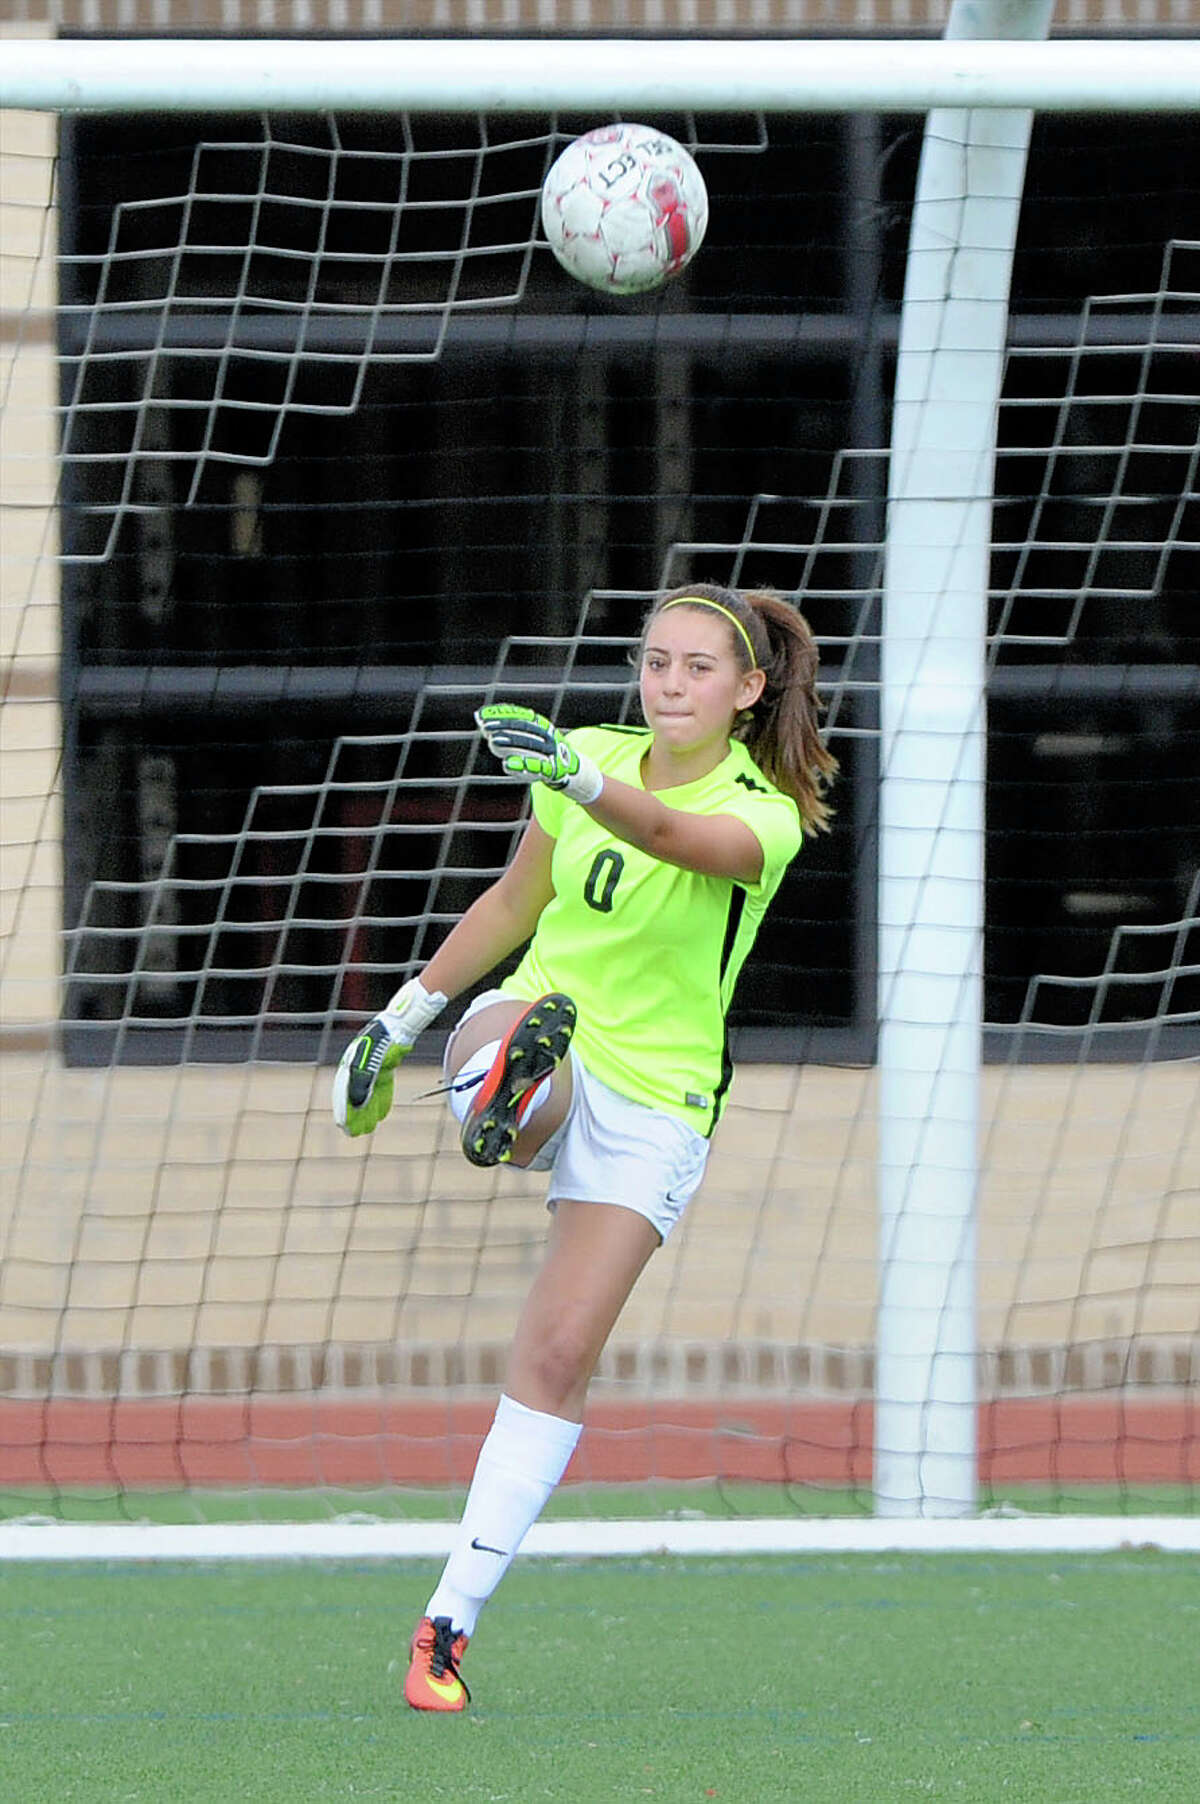 Goal Keeper Emilee Ulke (0) of George Ranch makes a goal kick during the second half of a girls soccer game in the Tiger Bracket of the Typhoon Texas/I-10 Shootout between the Lamar Texans and the George Ranch Longhorns on Thursday January 12, 2017 at Katy HS, Katy, TX.